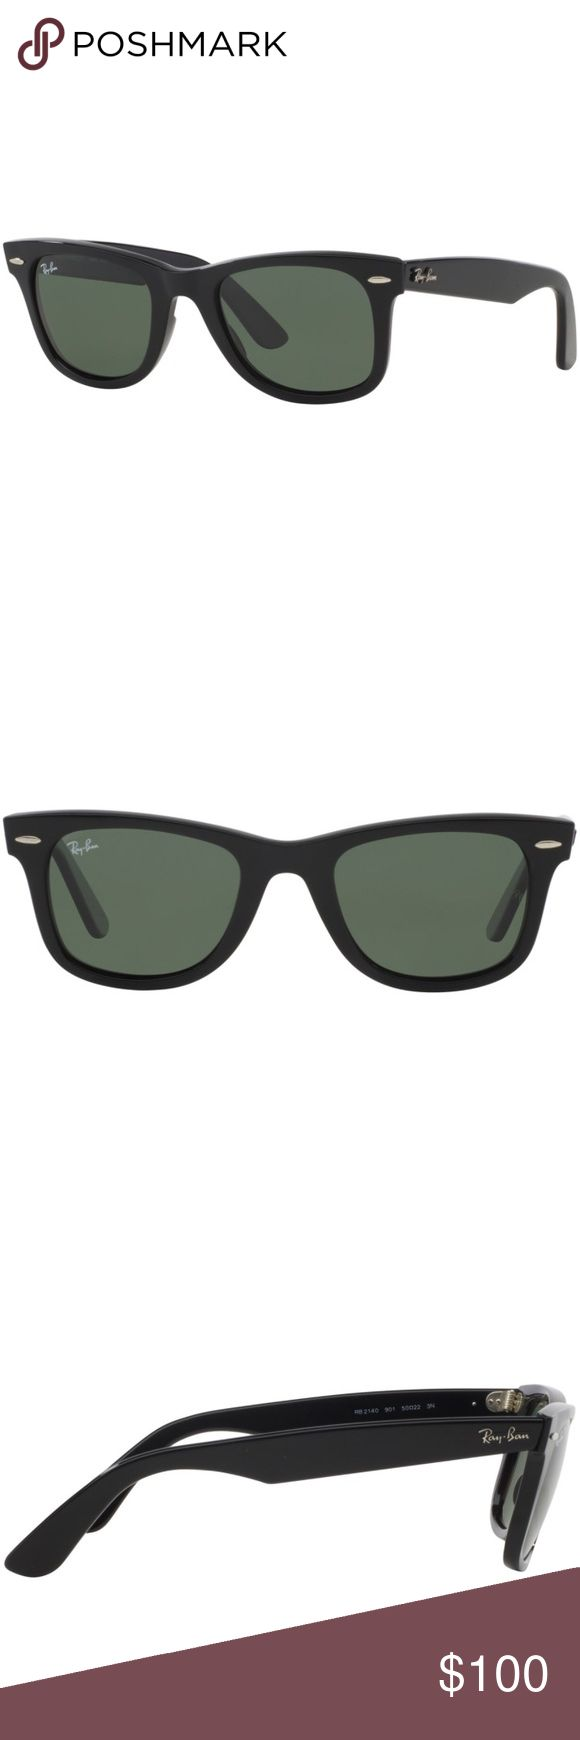 🕶Ray Ban Wayfarer 2140 sunglasses Ray Ban Wayfarer 2140 sunglasses.  Black acetate frames, gray lenses.  The distinct shape is paired with the traditional Ray Ban logo on the temples.  Worn once, mint condition.  Without case. Ray-Ban Accessories Sunglasses